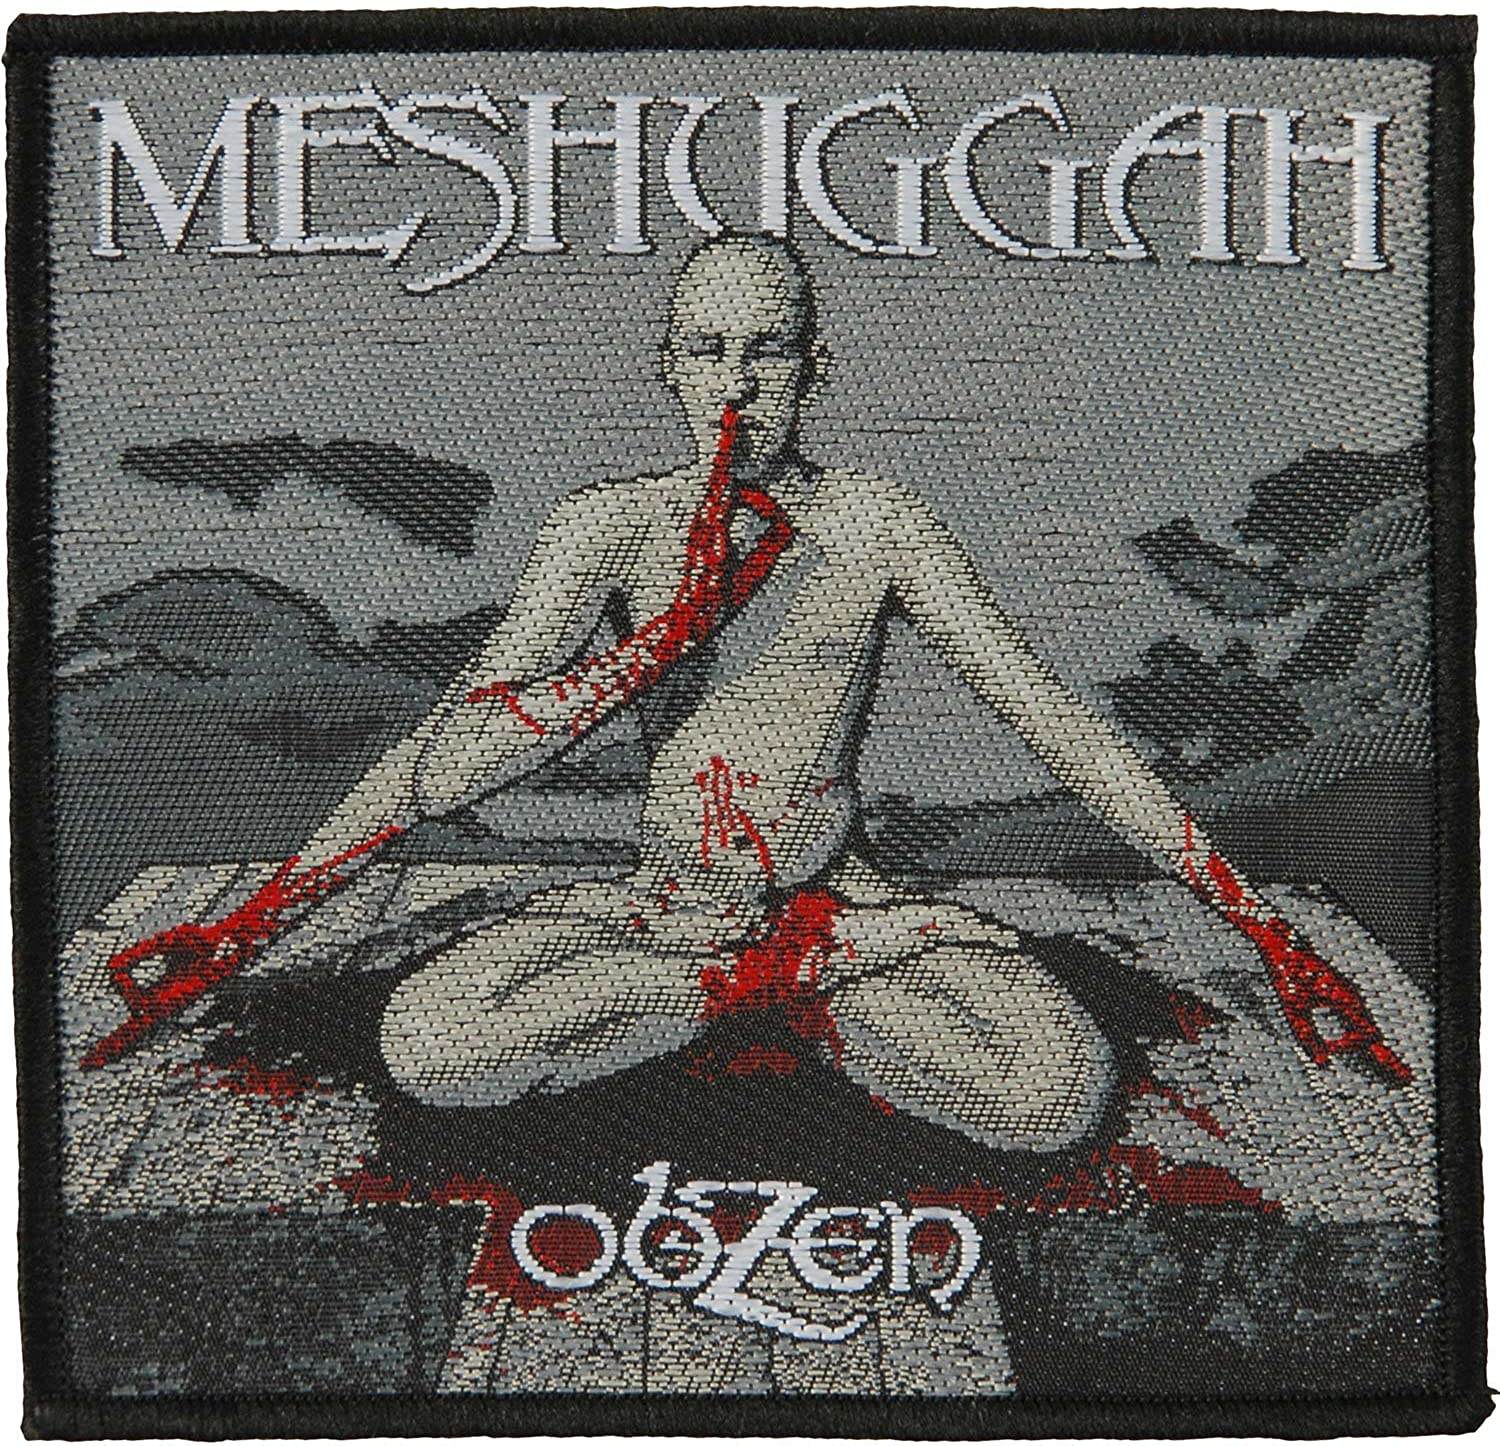 Meshuggah Men's Obzen Patch OFFicial site Limited price sale Woven Black